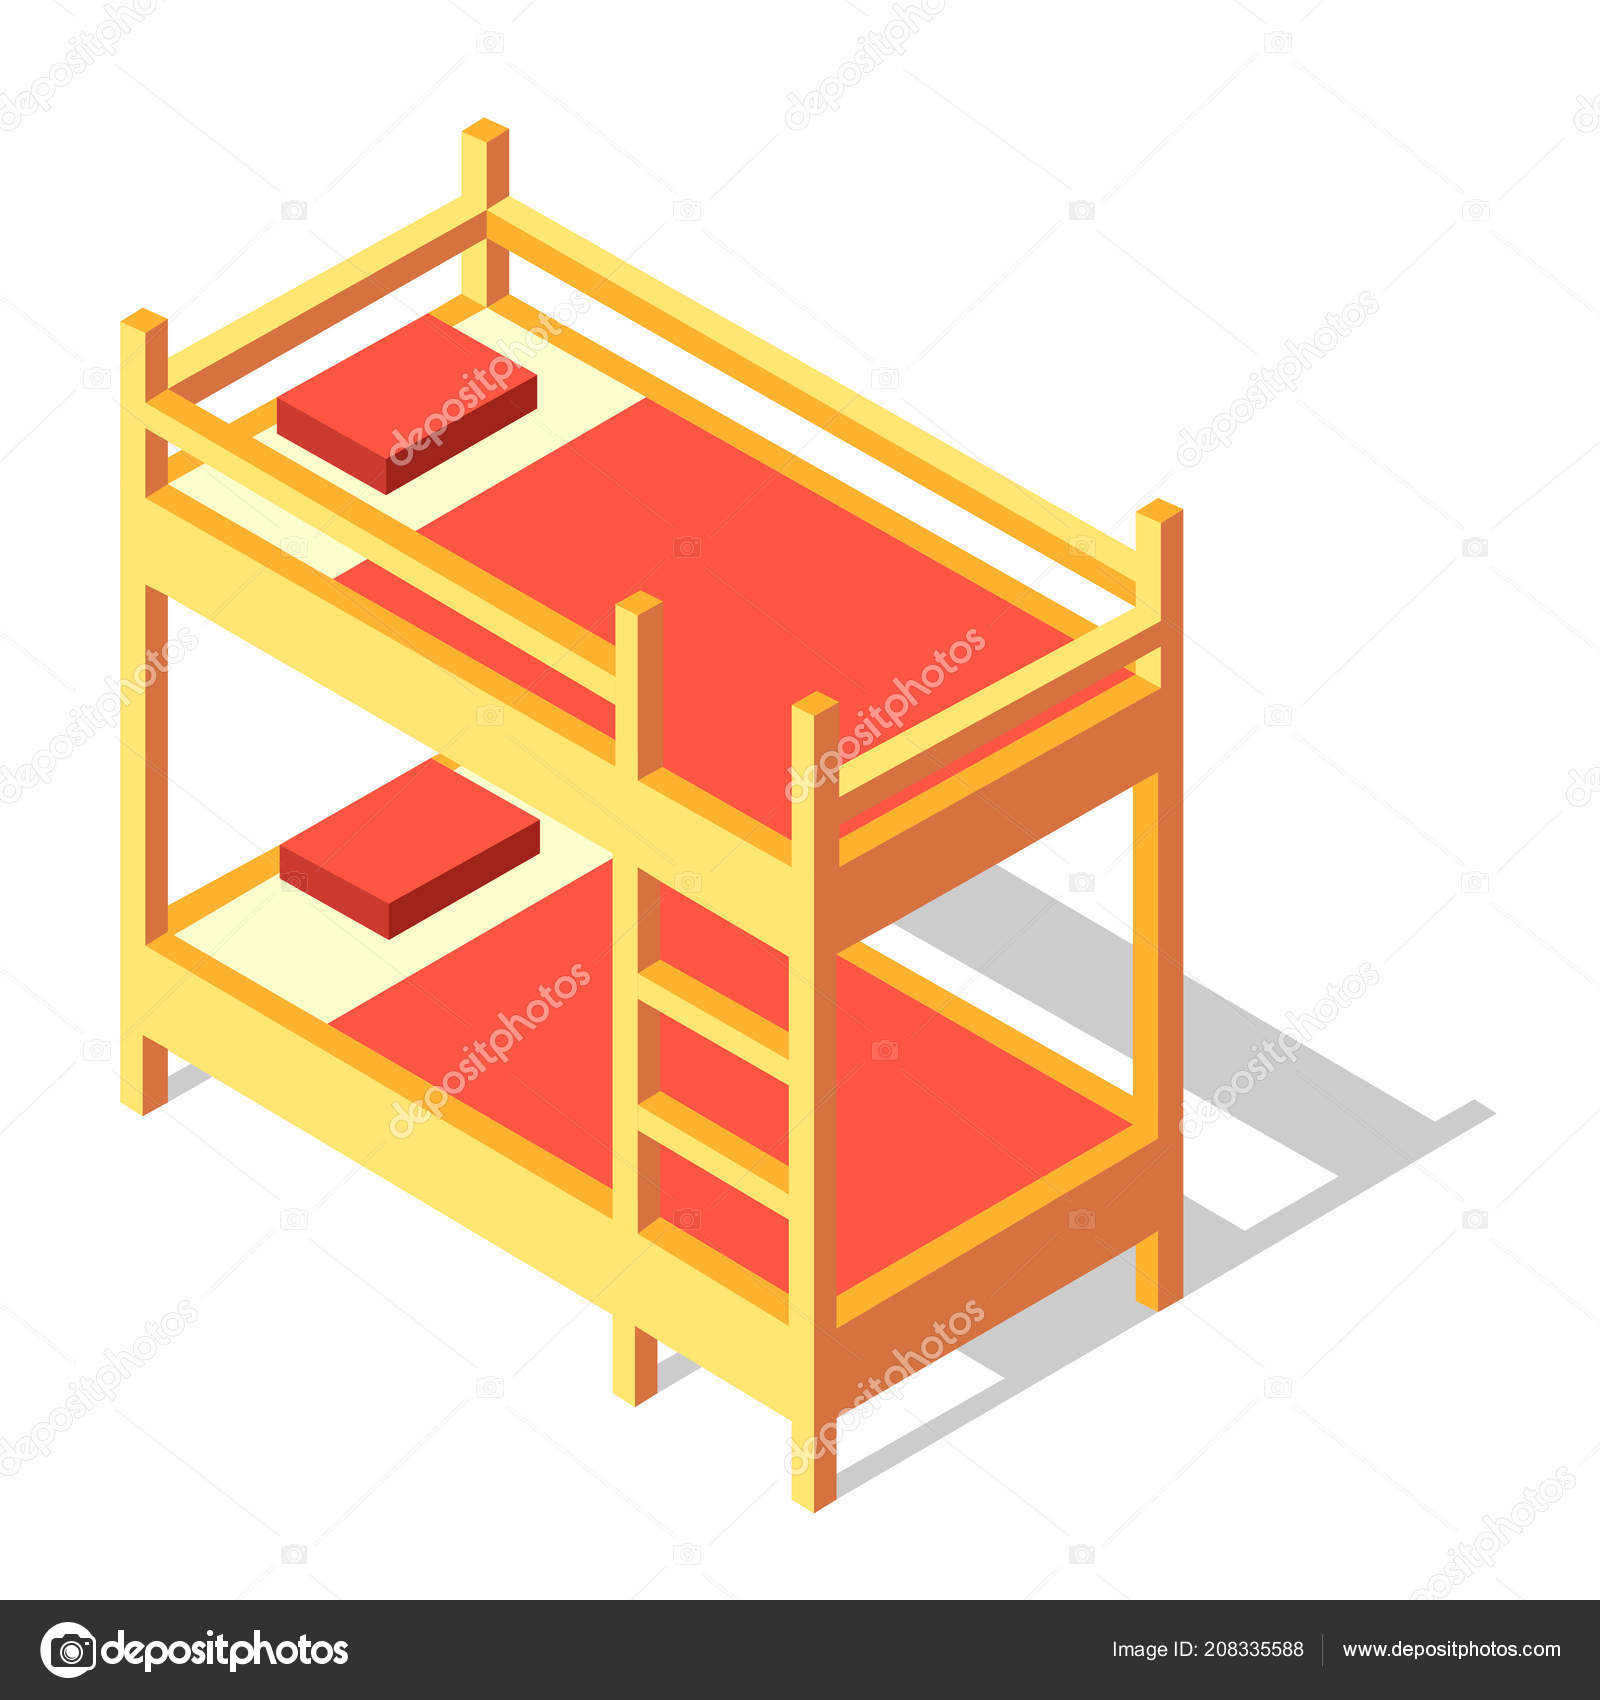 Disegno Letto A Castello.Bunk Bed Isometric Illustration Stock Vector C Chanut Is